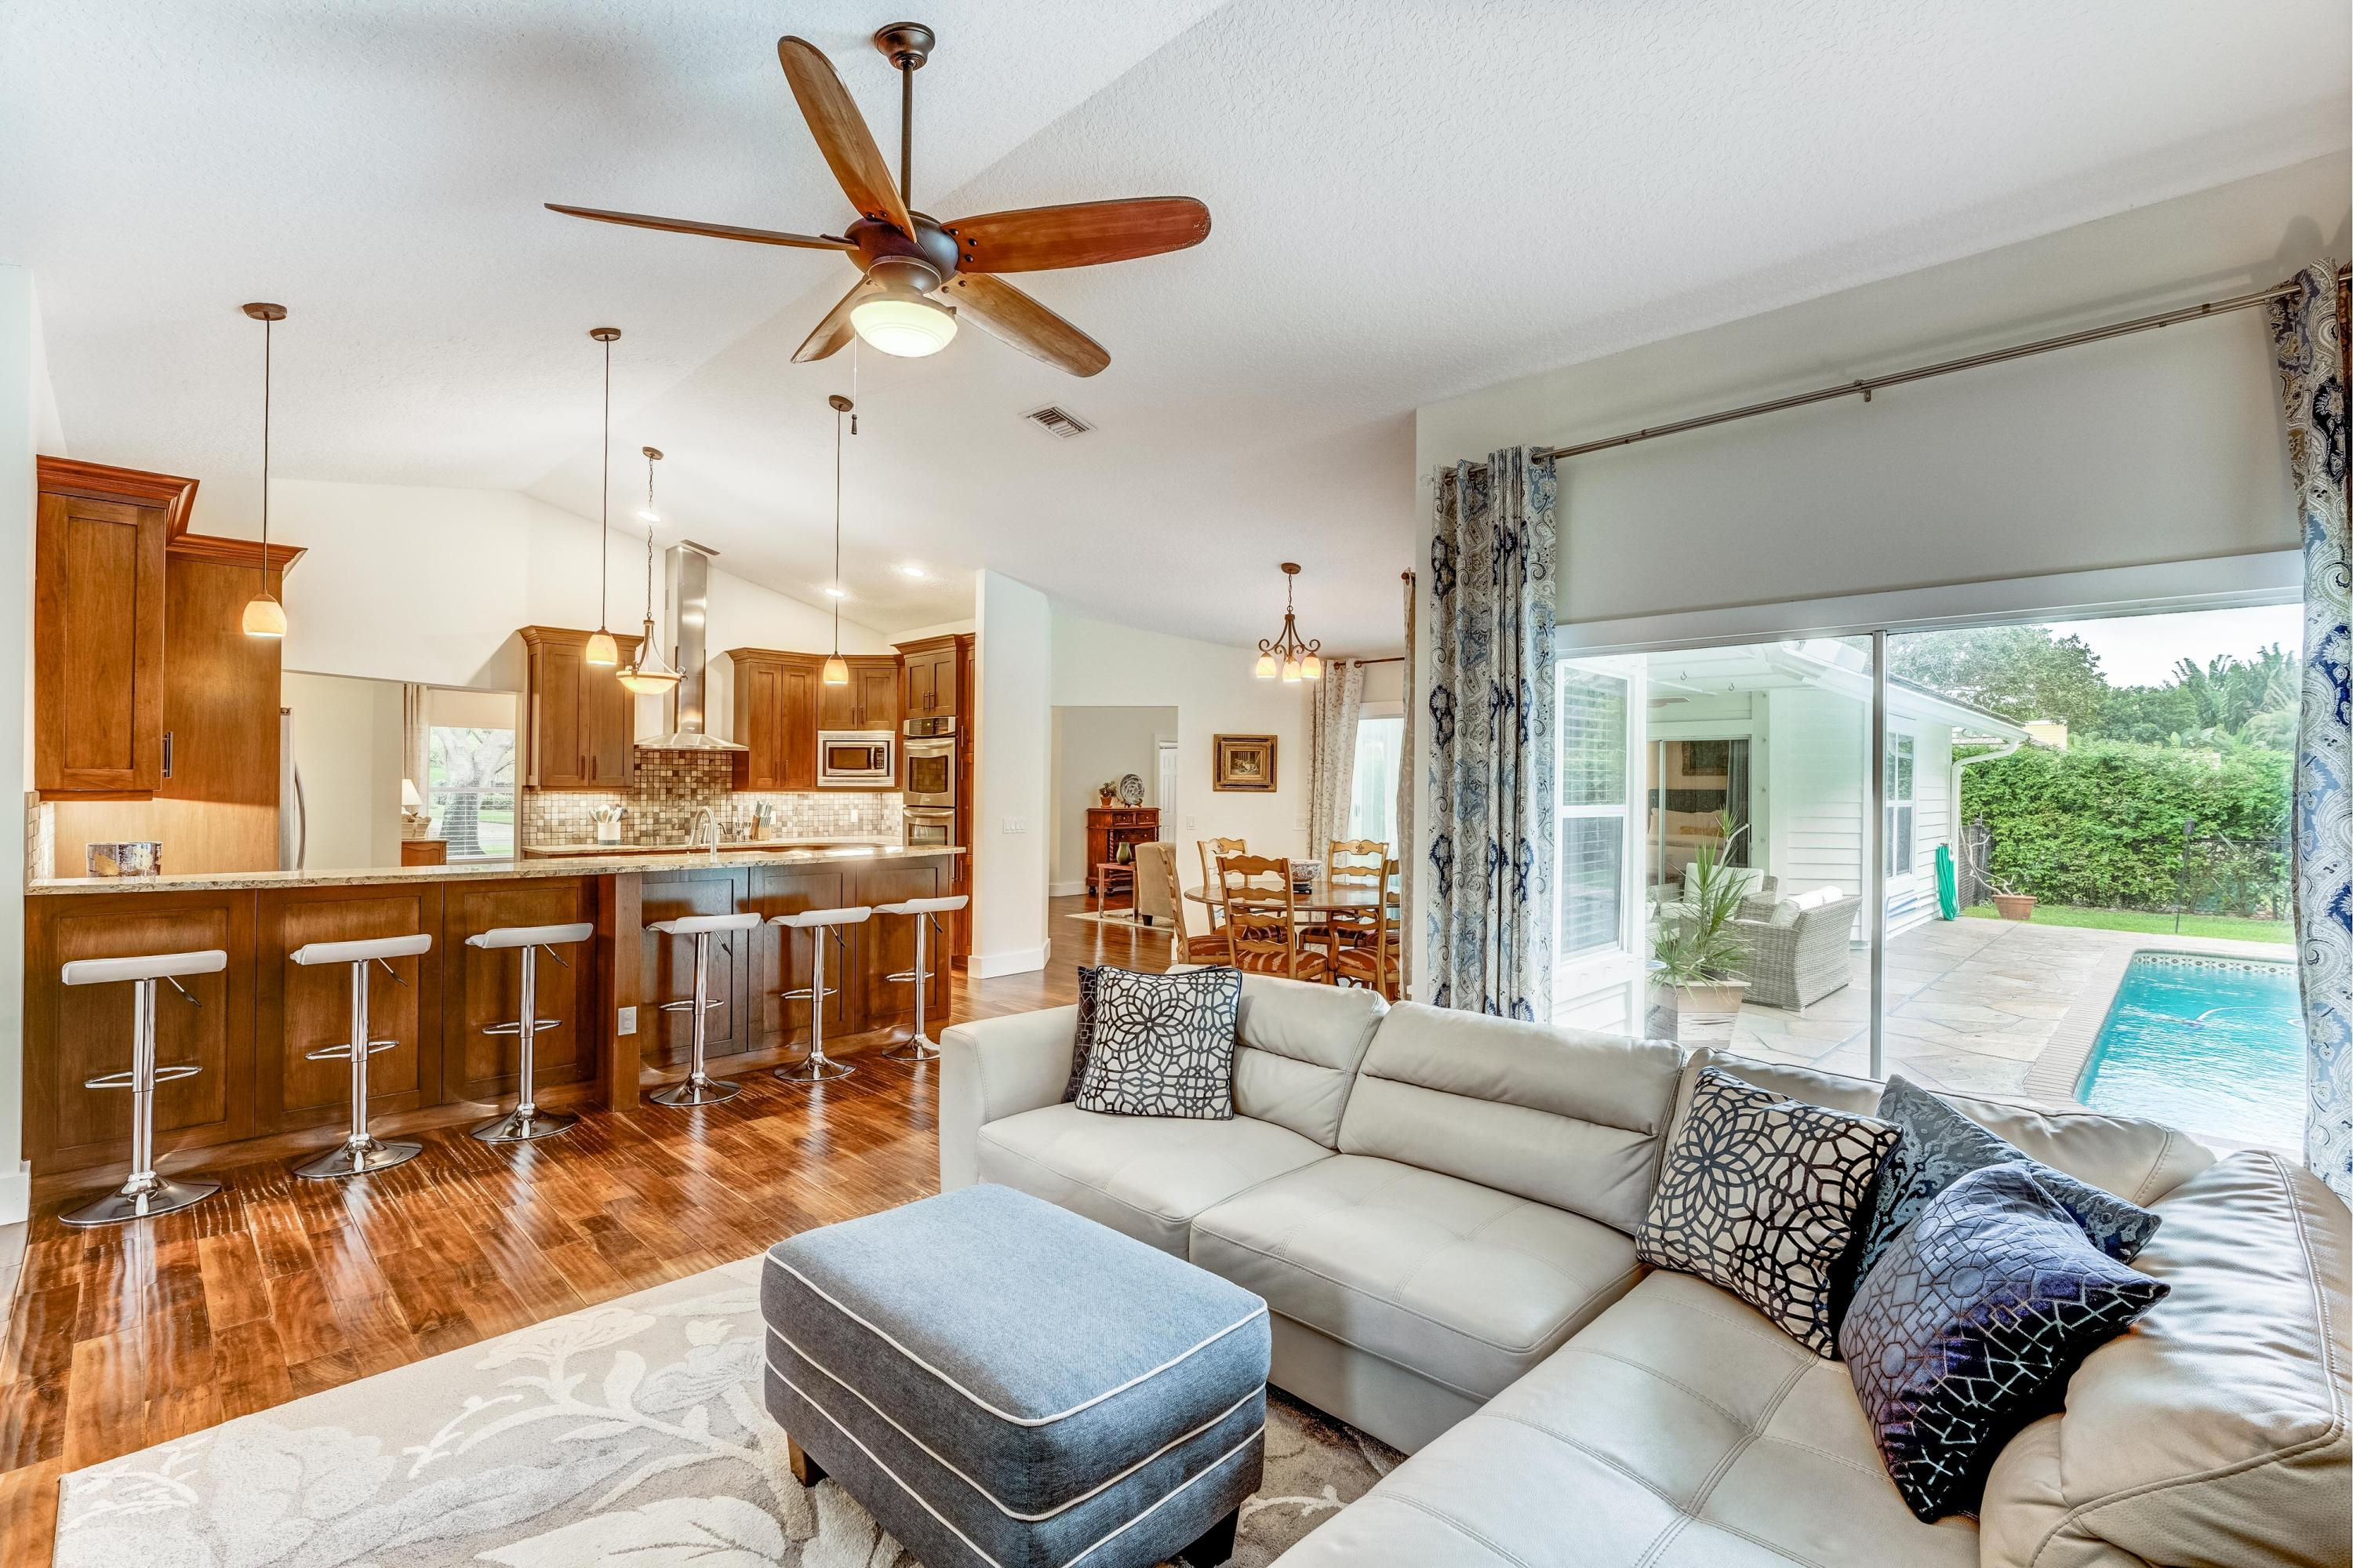 RIVER RIDGE TEQUESTA